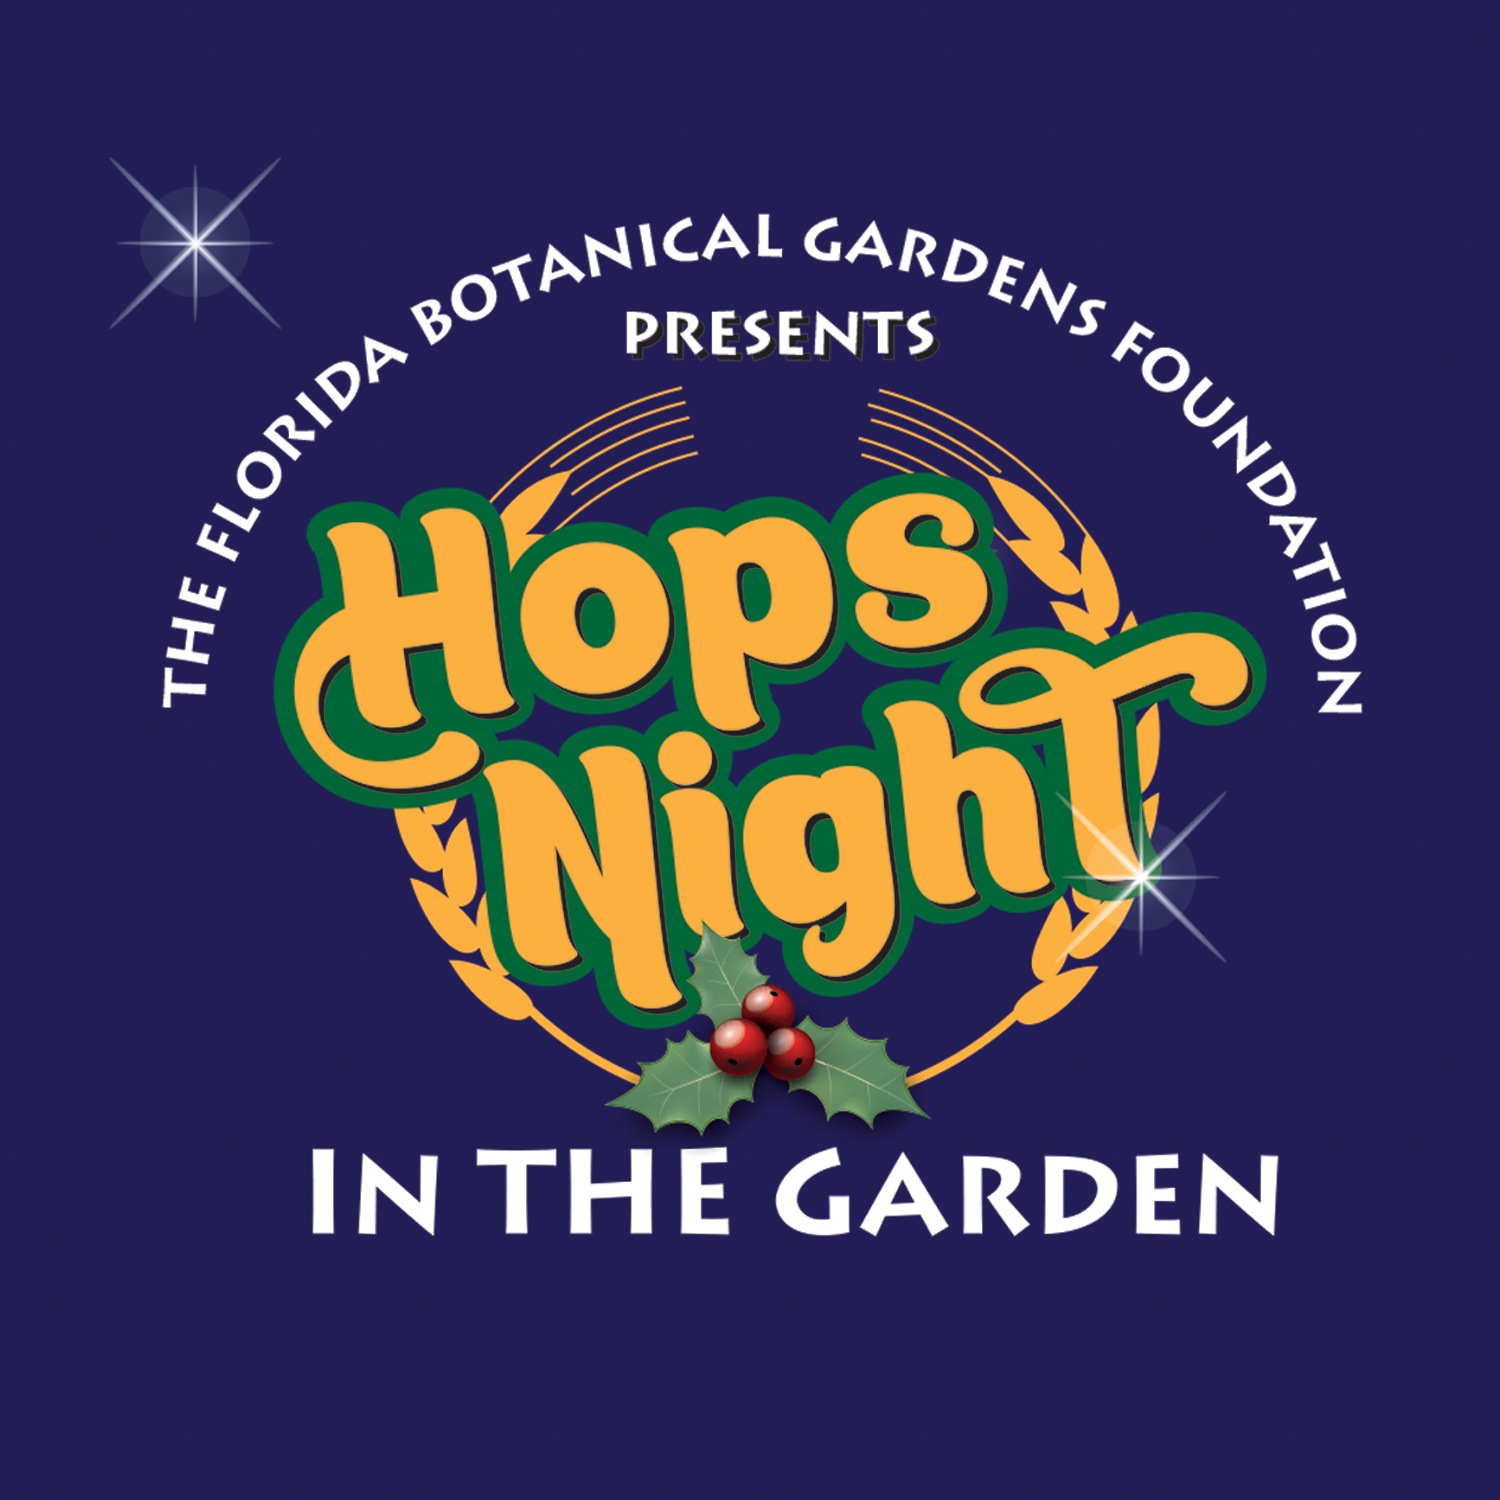 """The Florida Botanical Gardens presents Hops Night in the Garden"""